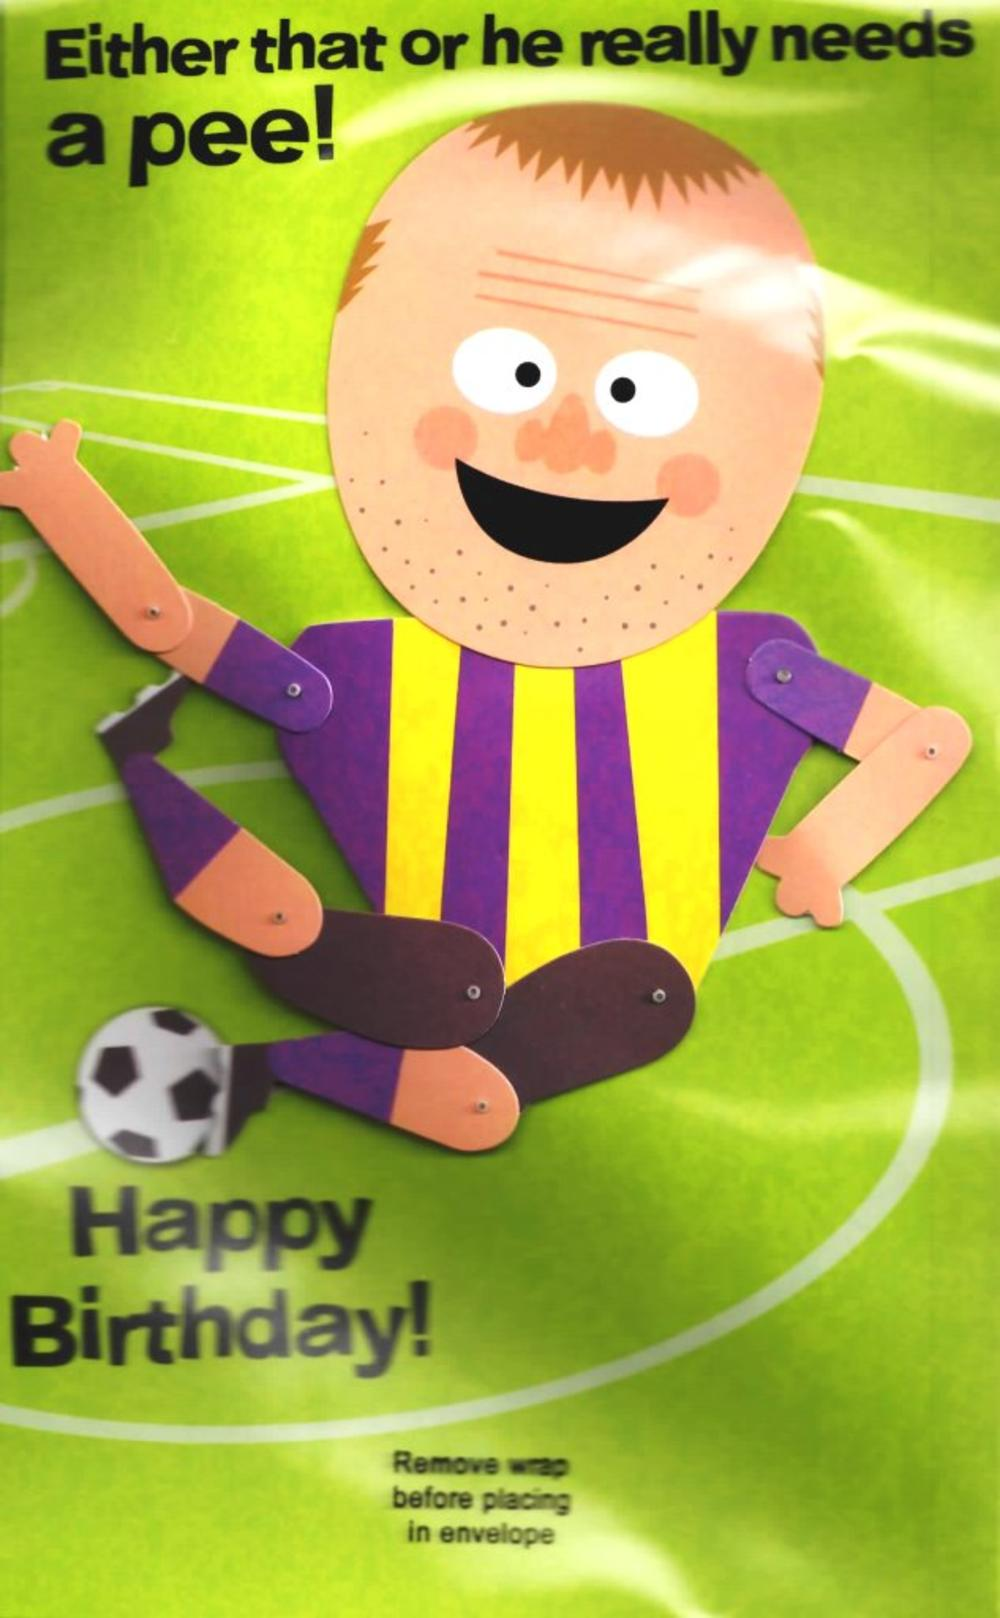 Funny Rooney Football Sound Birthday Card   Cards   Love Kates